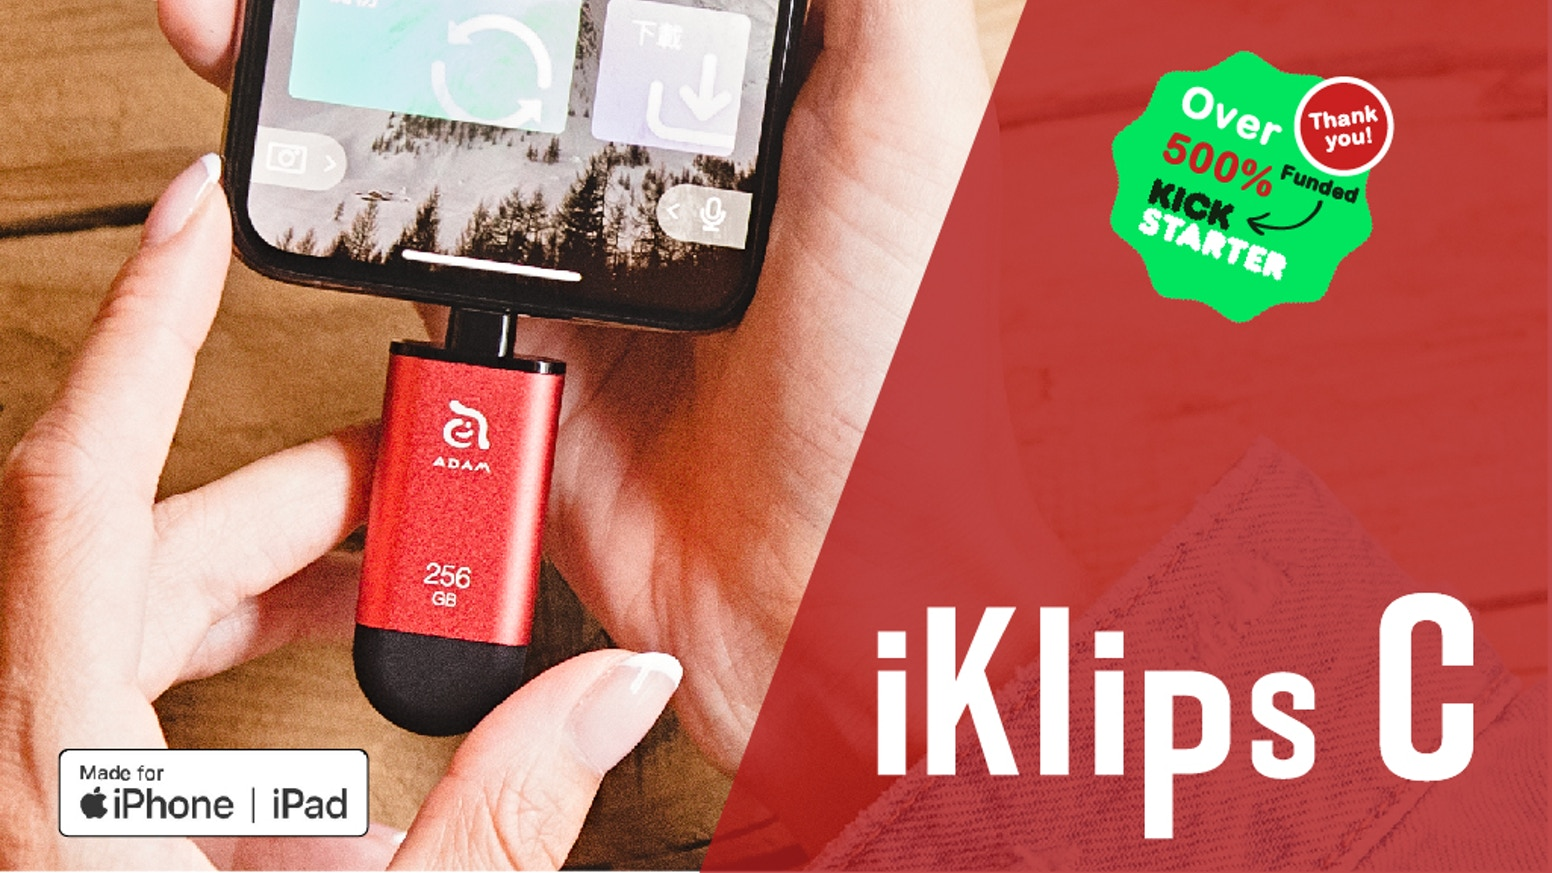 iKlips C is made for the latest iPad Pro/iPhone with either Lightning or USB-C ports! Now you can easily manage files without limits.